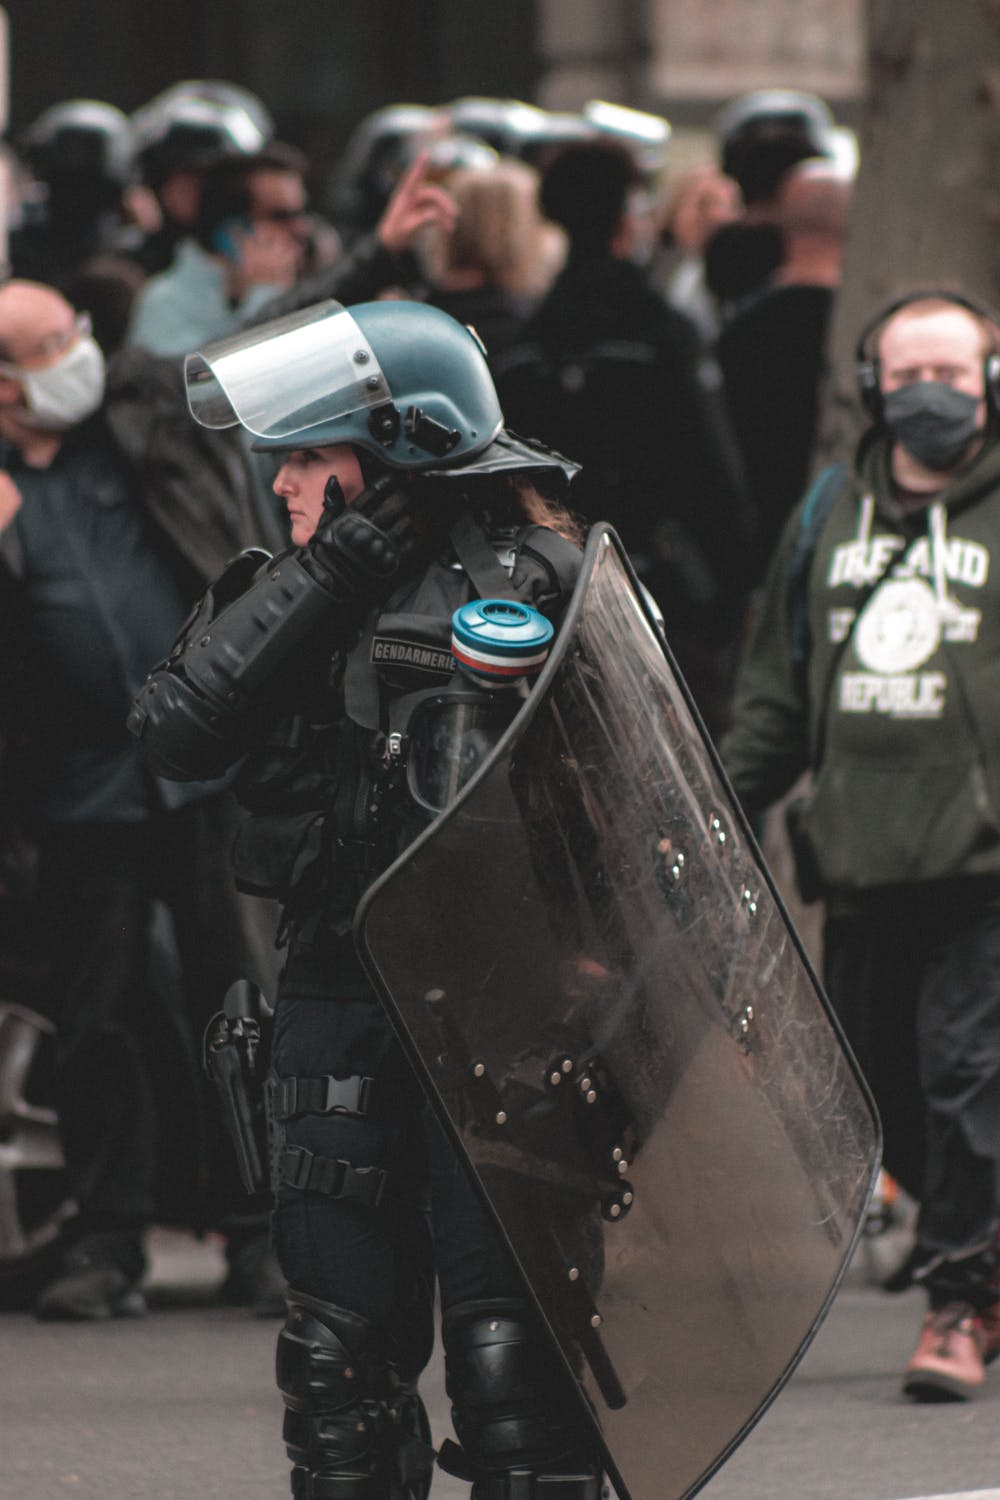 stock photo of a woman in riot police gear